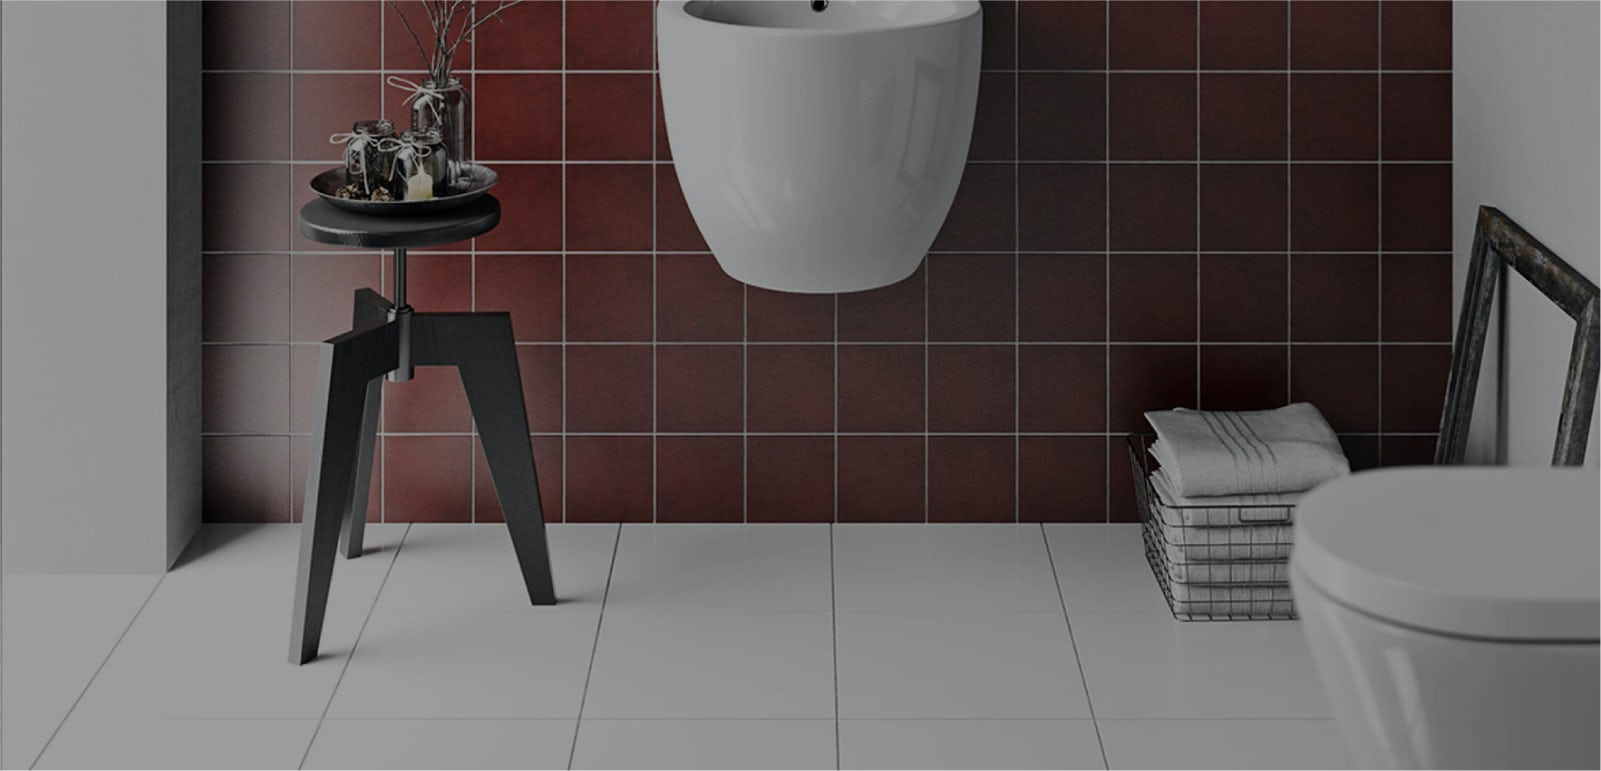 i fit the toilet before or after tiling